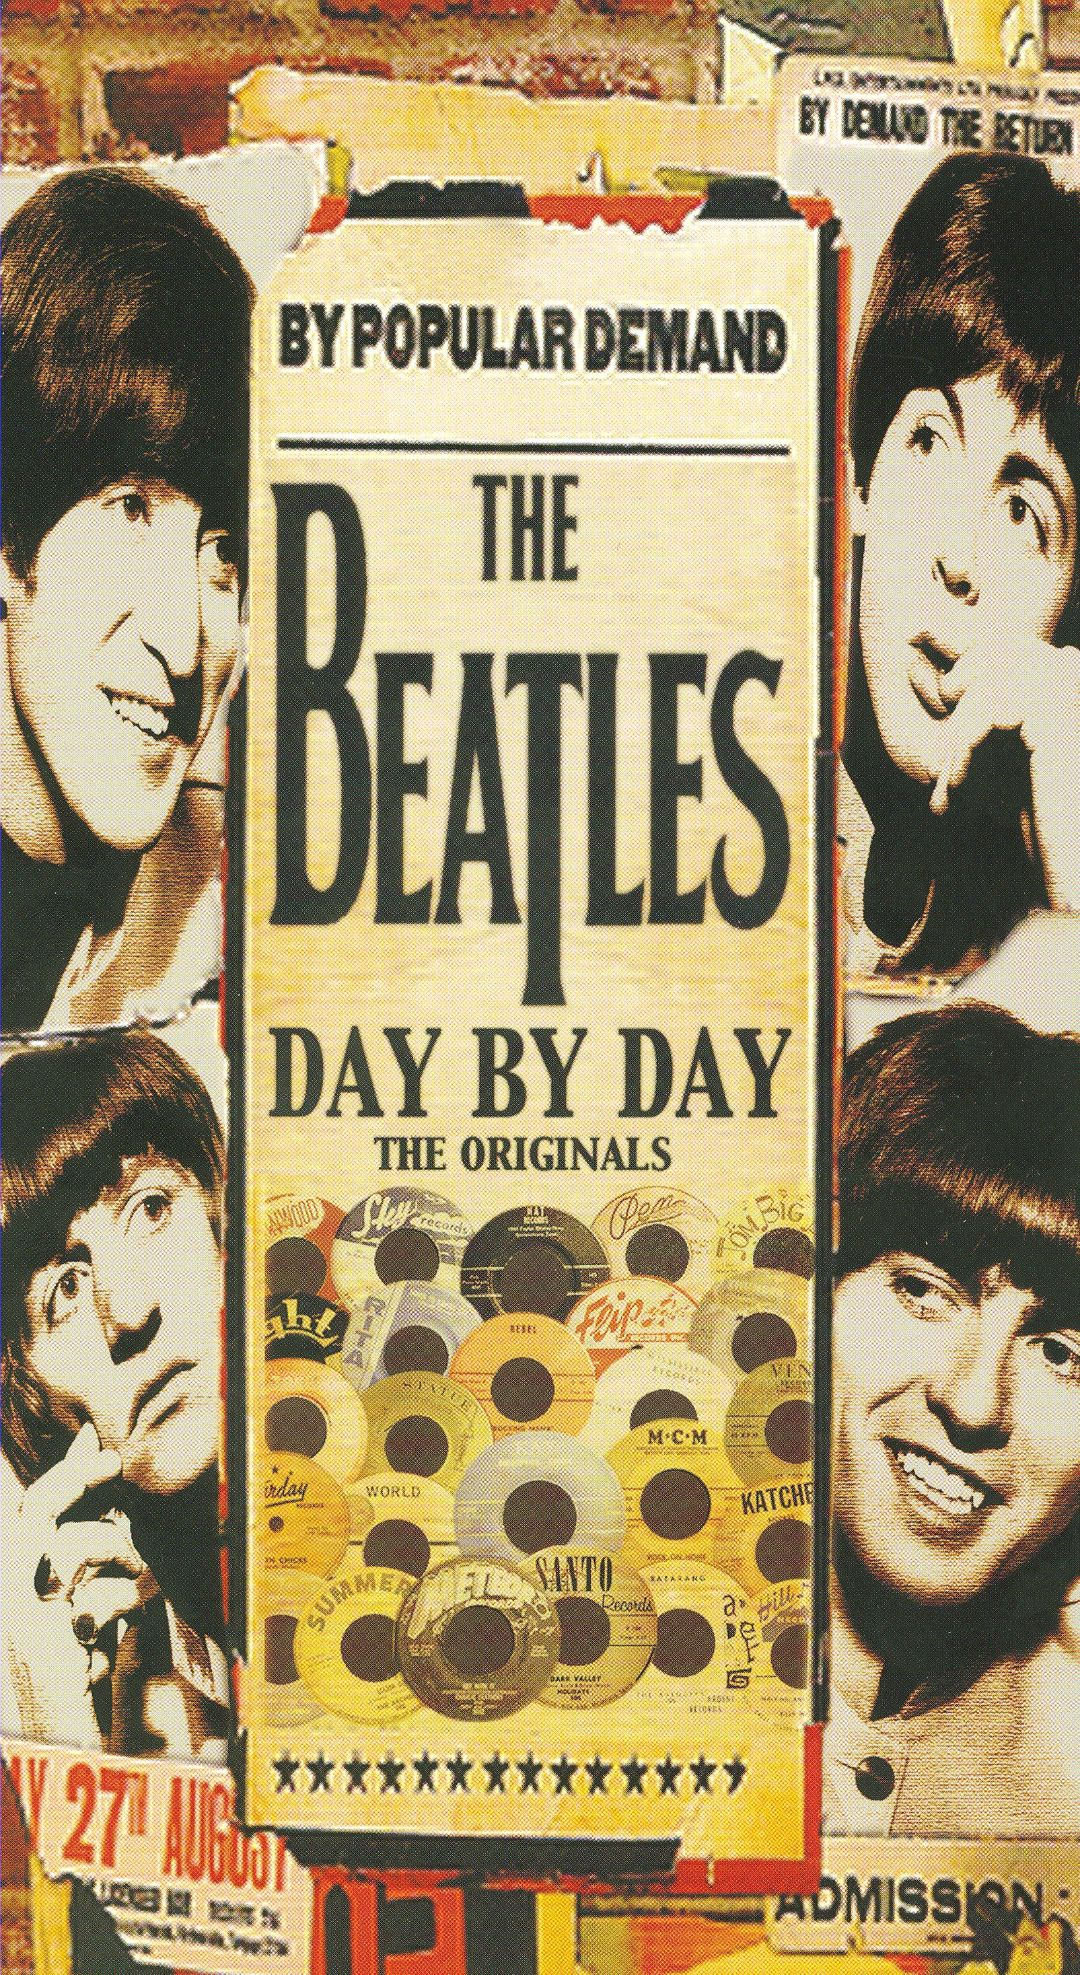 The Beatles: Day by Day -- The Originals